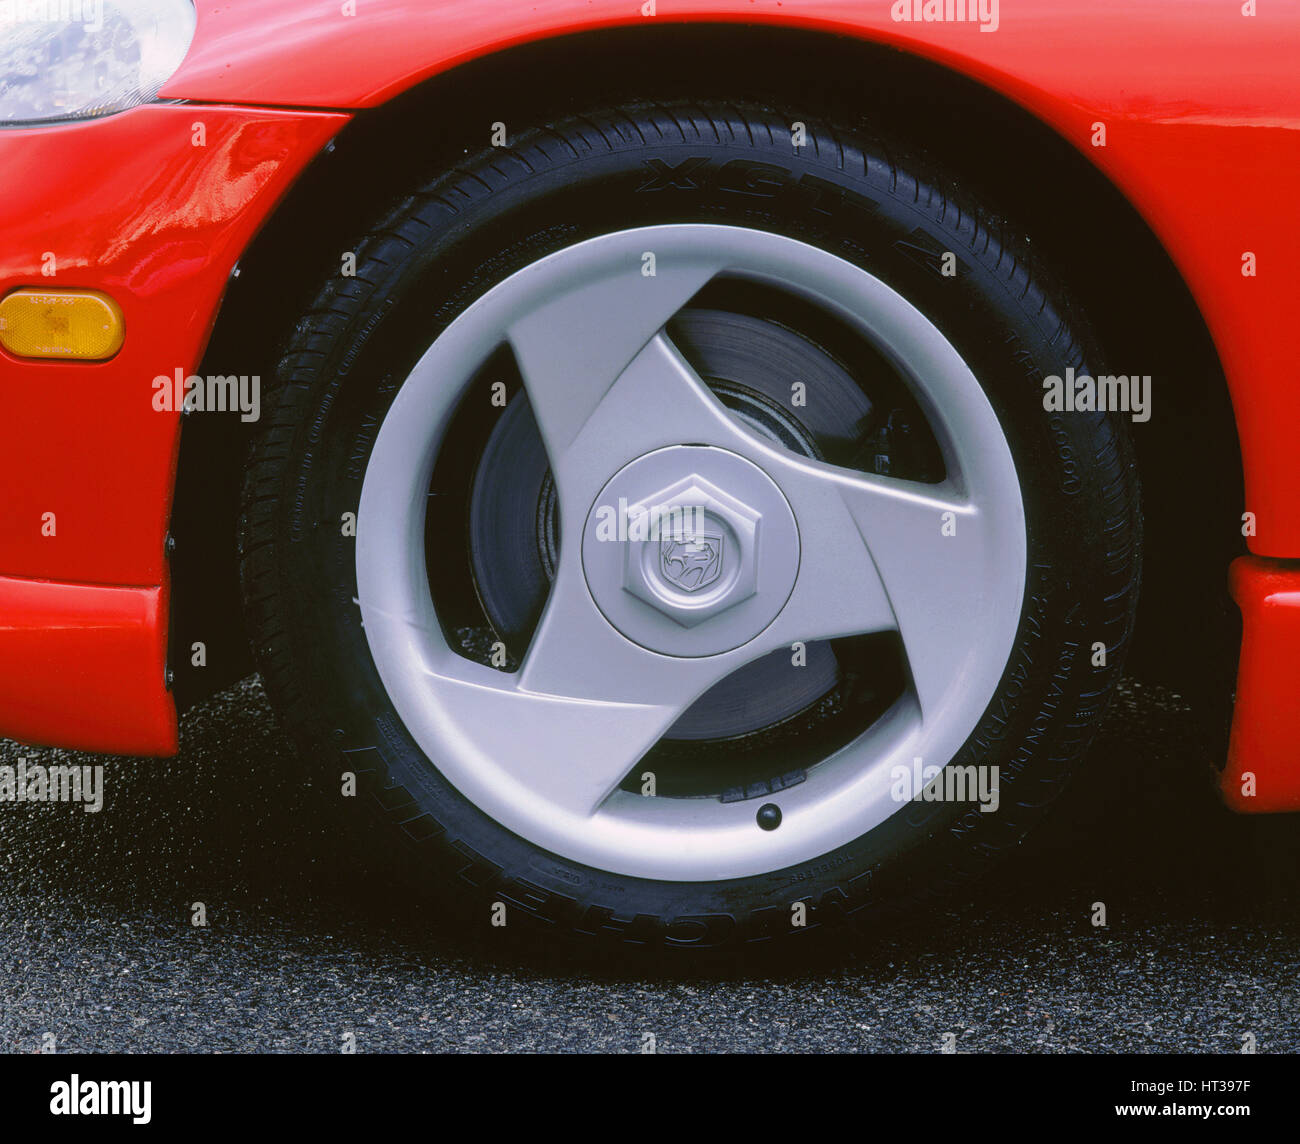 1993 Dodge Viper alloy wheel. Artist: Unknown. - Stock Image